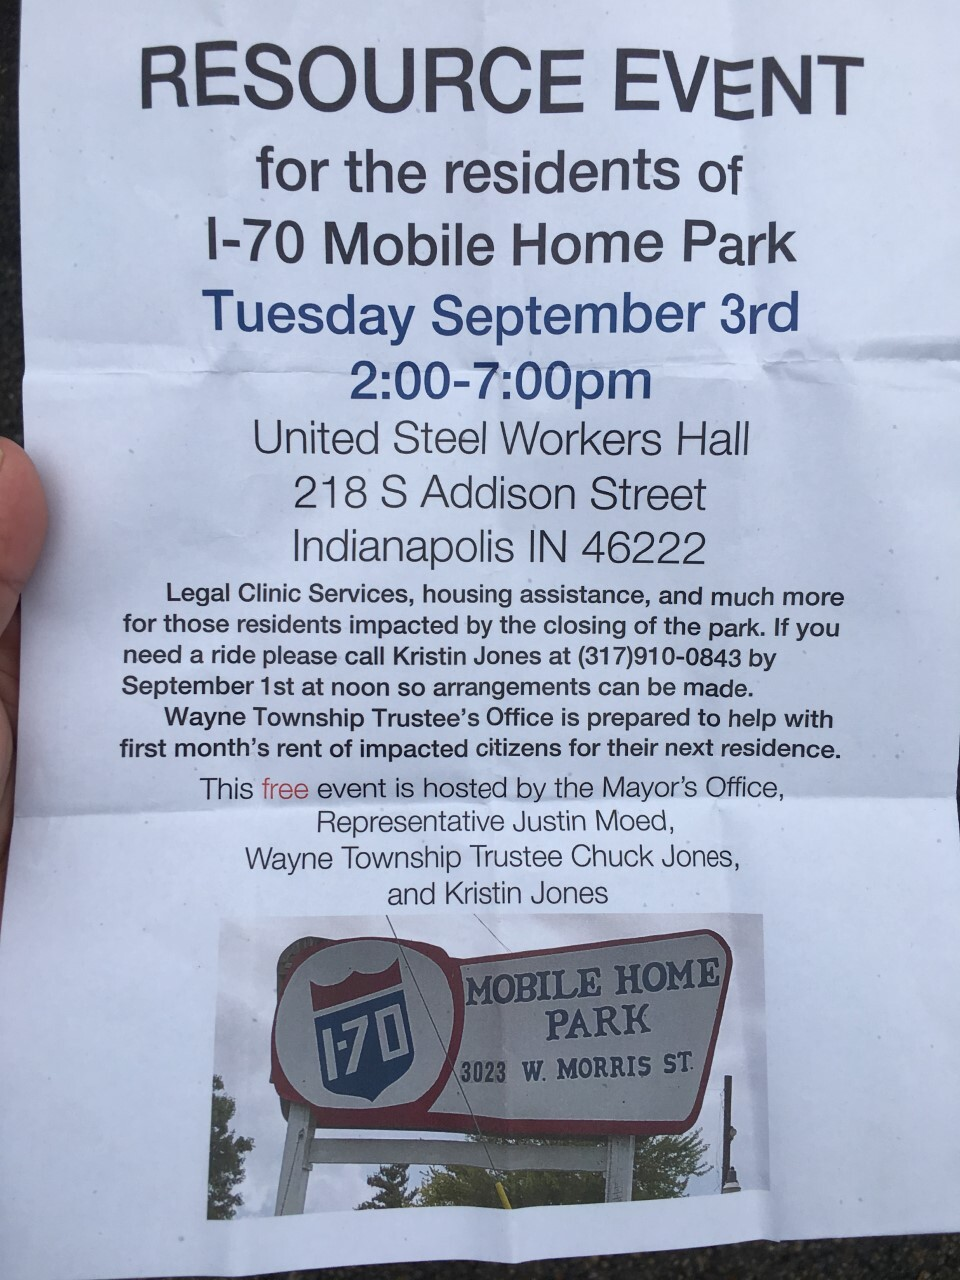 resource event for mobile home park.jpg